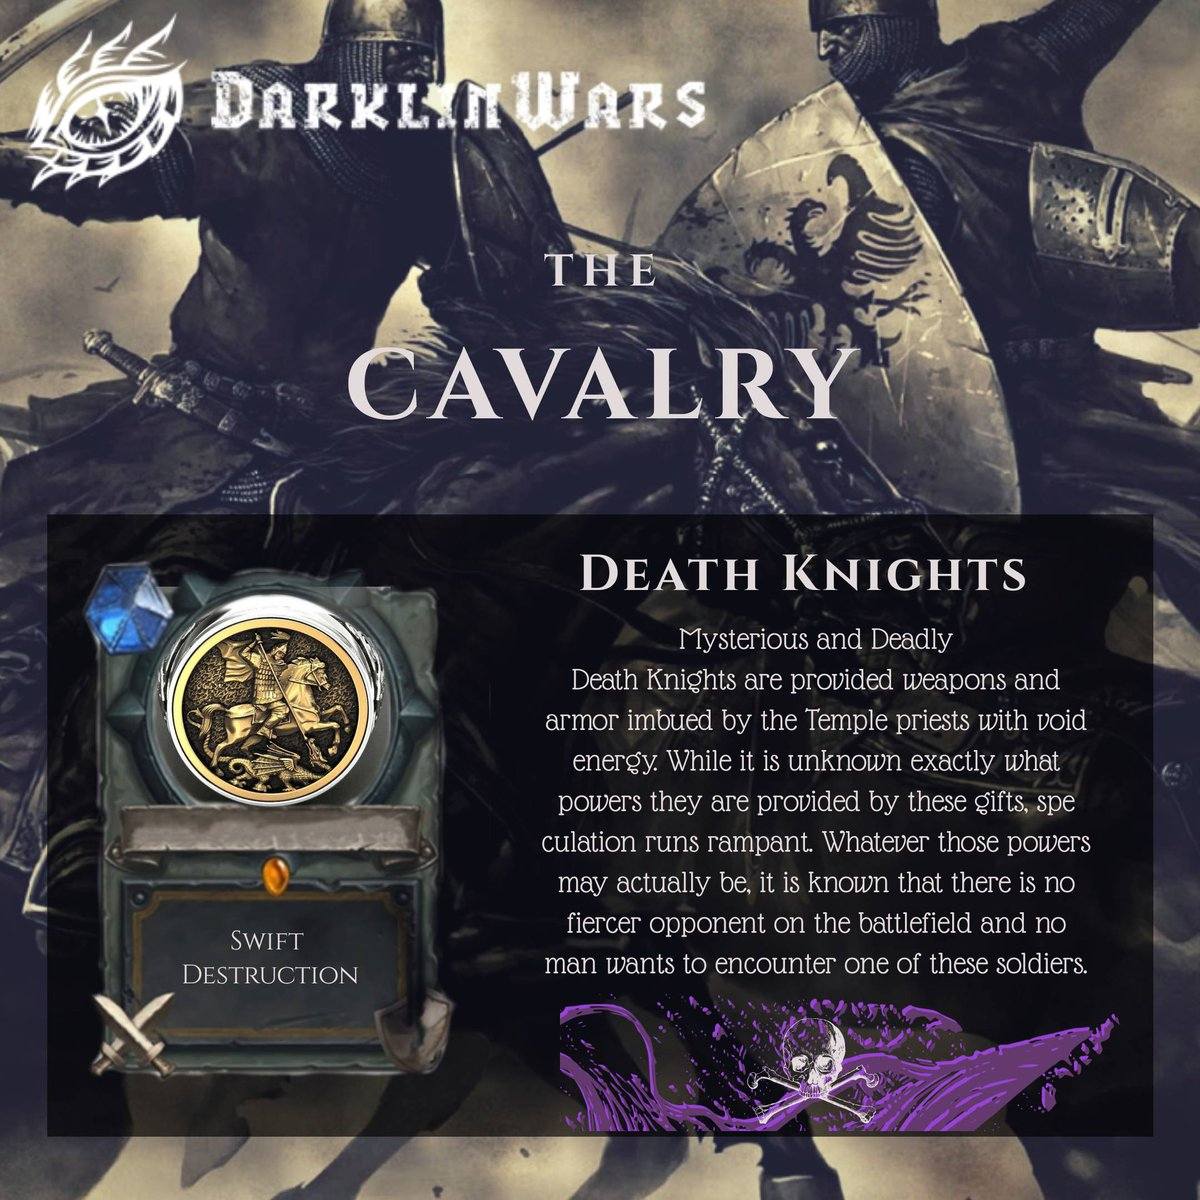 Week 2 - Cavalry DEATH KNIGHTS: Mysterious and Deadly✨ 👉 https://t.co/KLGzXg43sT⚔️ . #indie #game #darklinwars #indiedev #mobile #infantry #mobilegame #indiedevworldhour #mmorts #war https://t.co/eMFs7Zrh7h